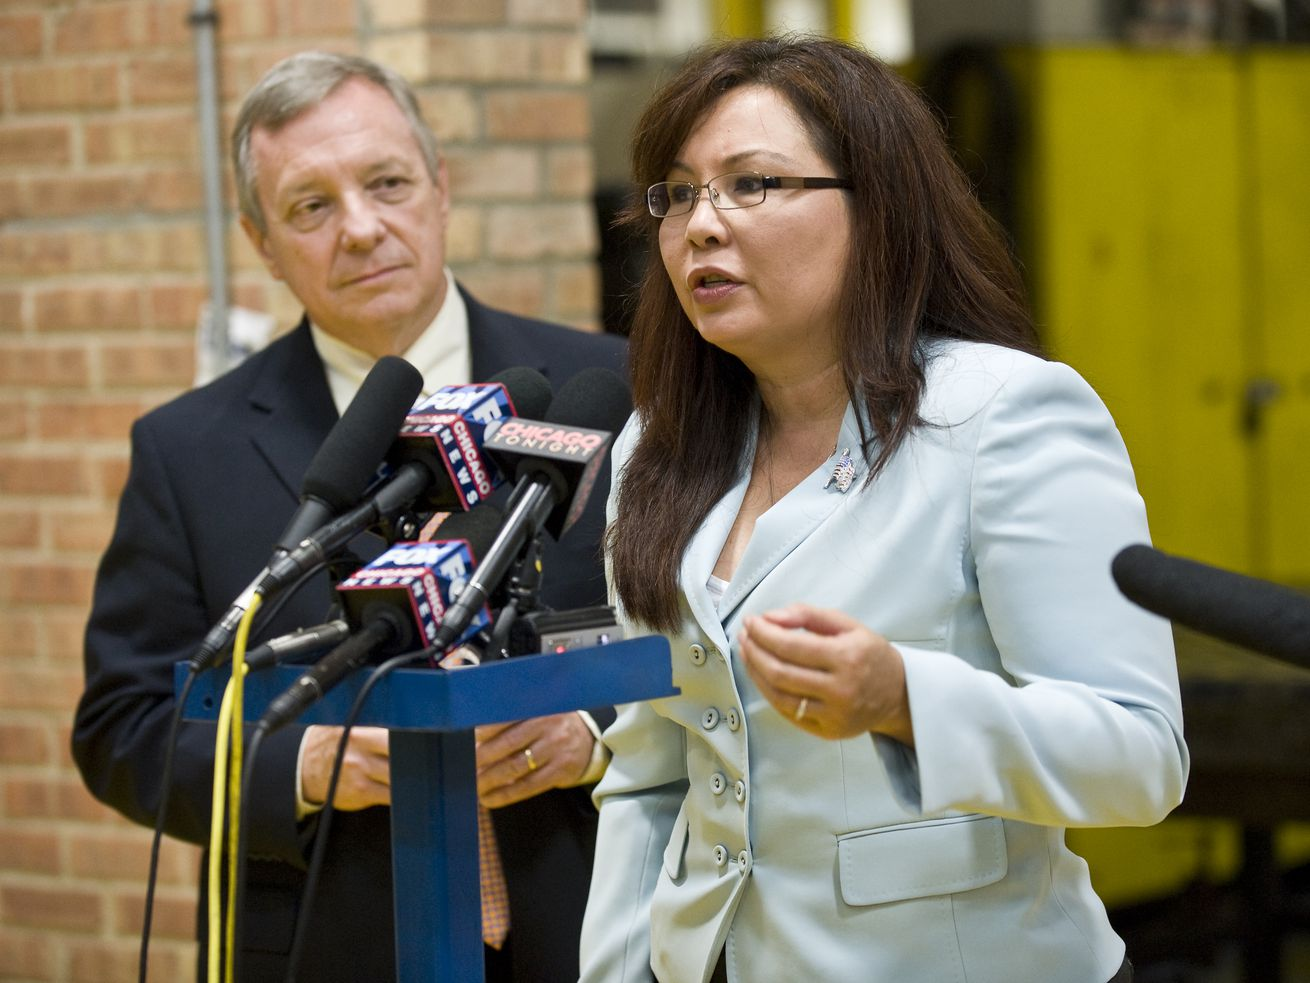 U.S. Senators Dick Durbin and Tammy Duckworth